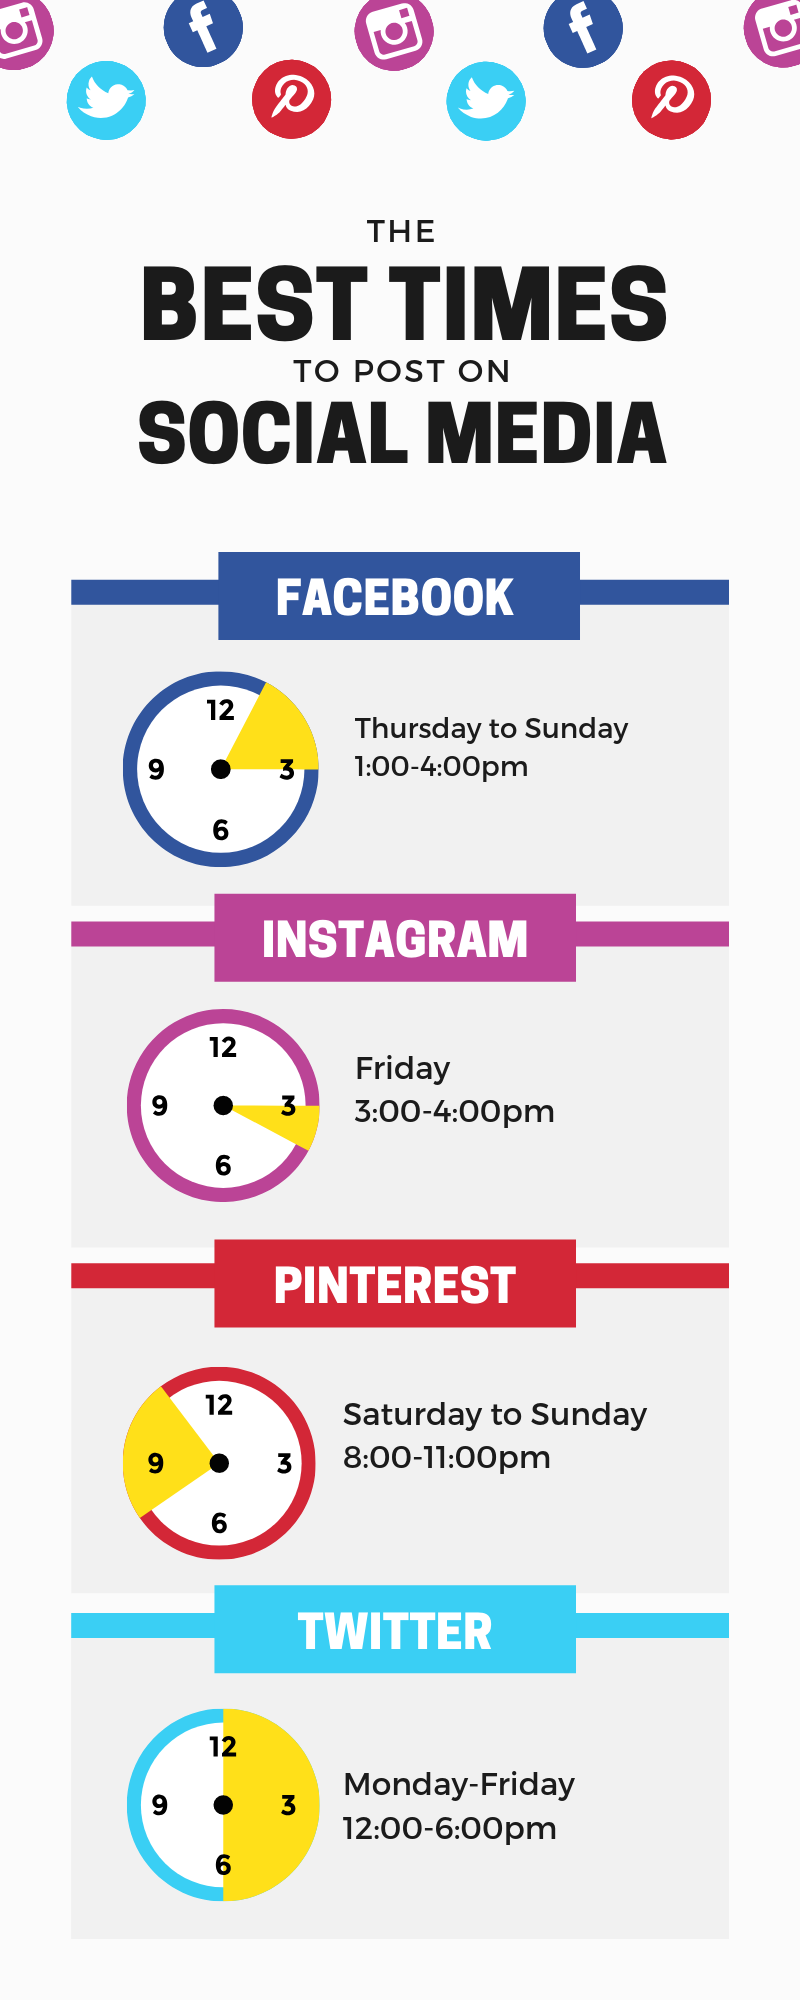 The Best Times to Post on the Social Media